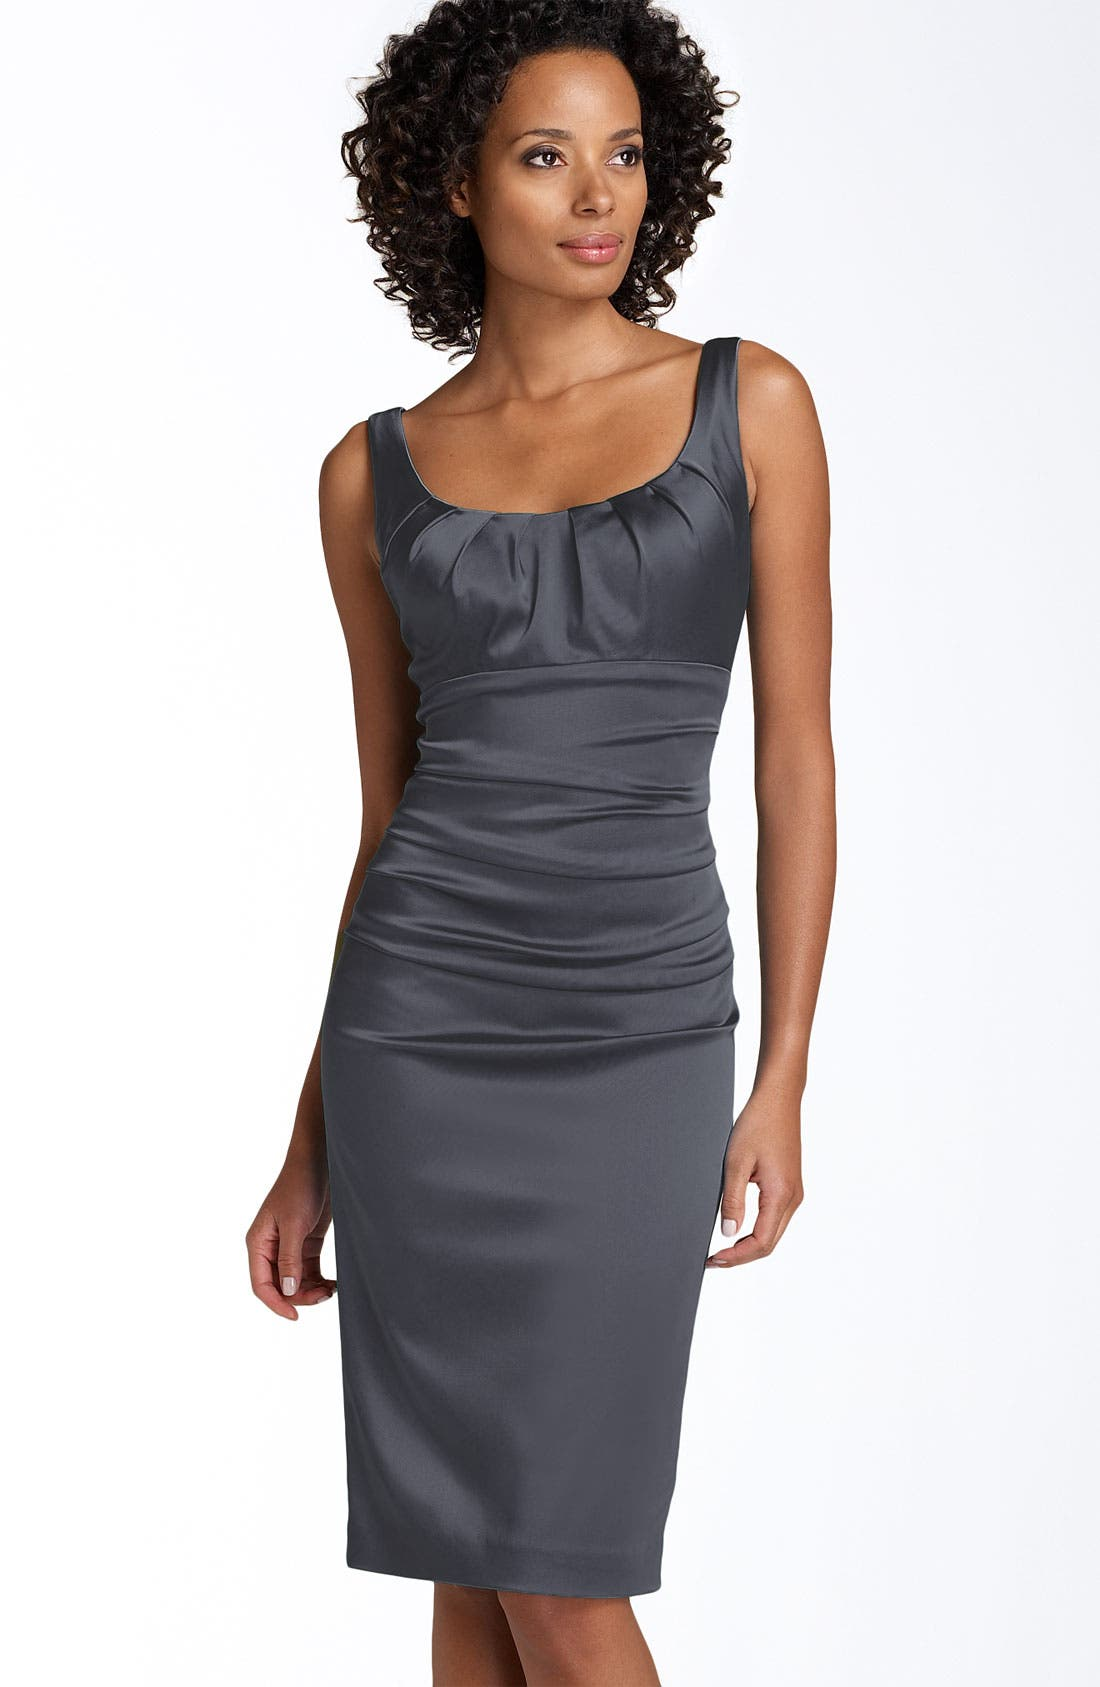 Main Image - Suzi Chin for Maggy Boutique Sleeveless Stretch Satin Sheath Dress